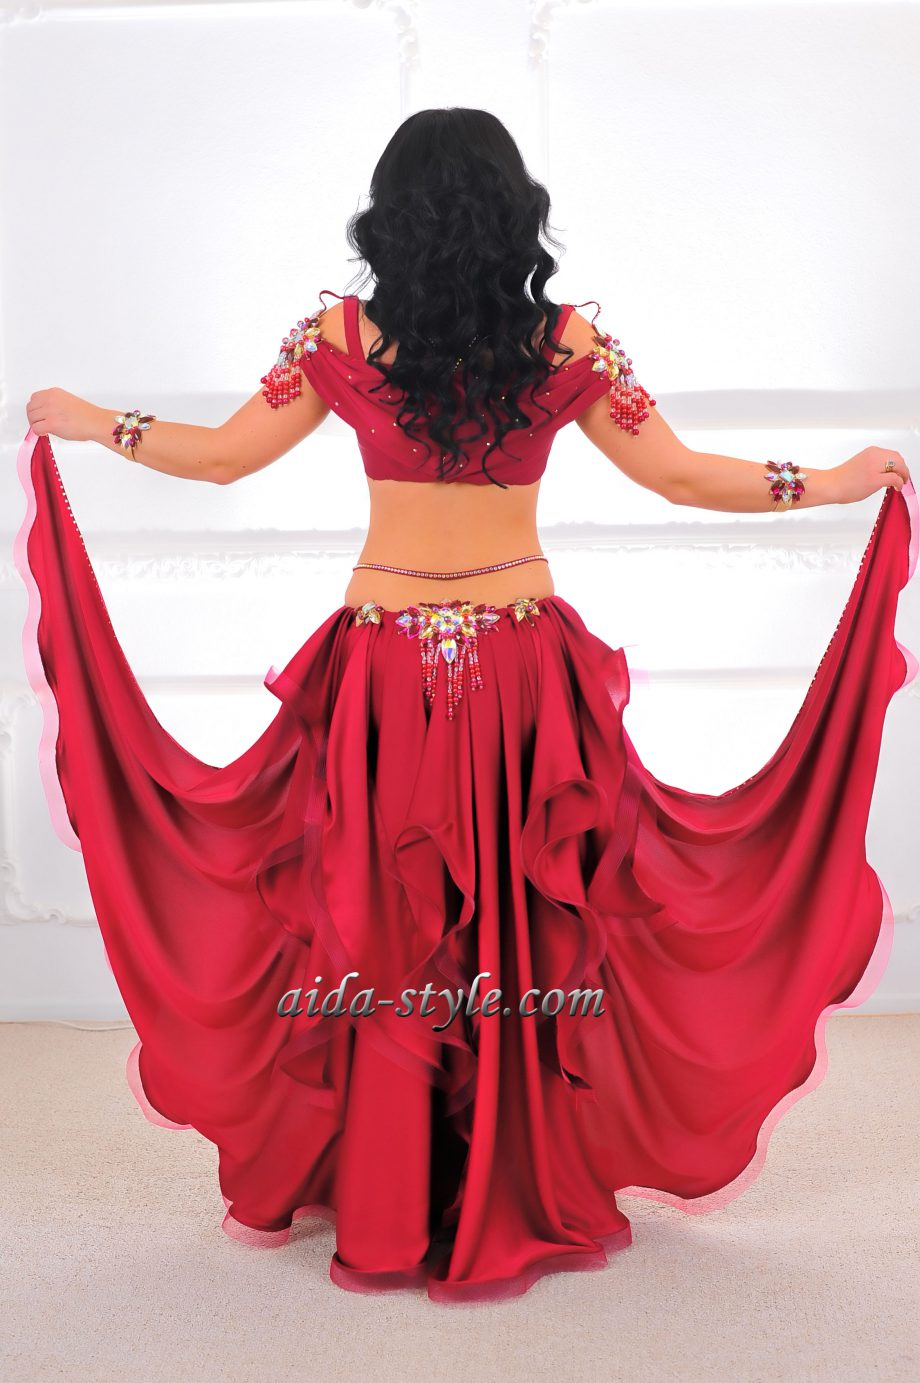 professional belly dancing outfits red